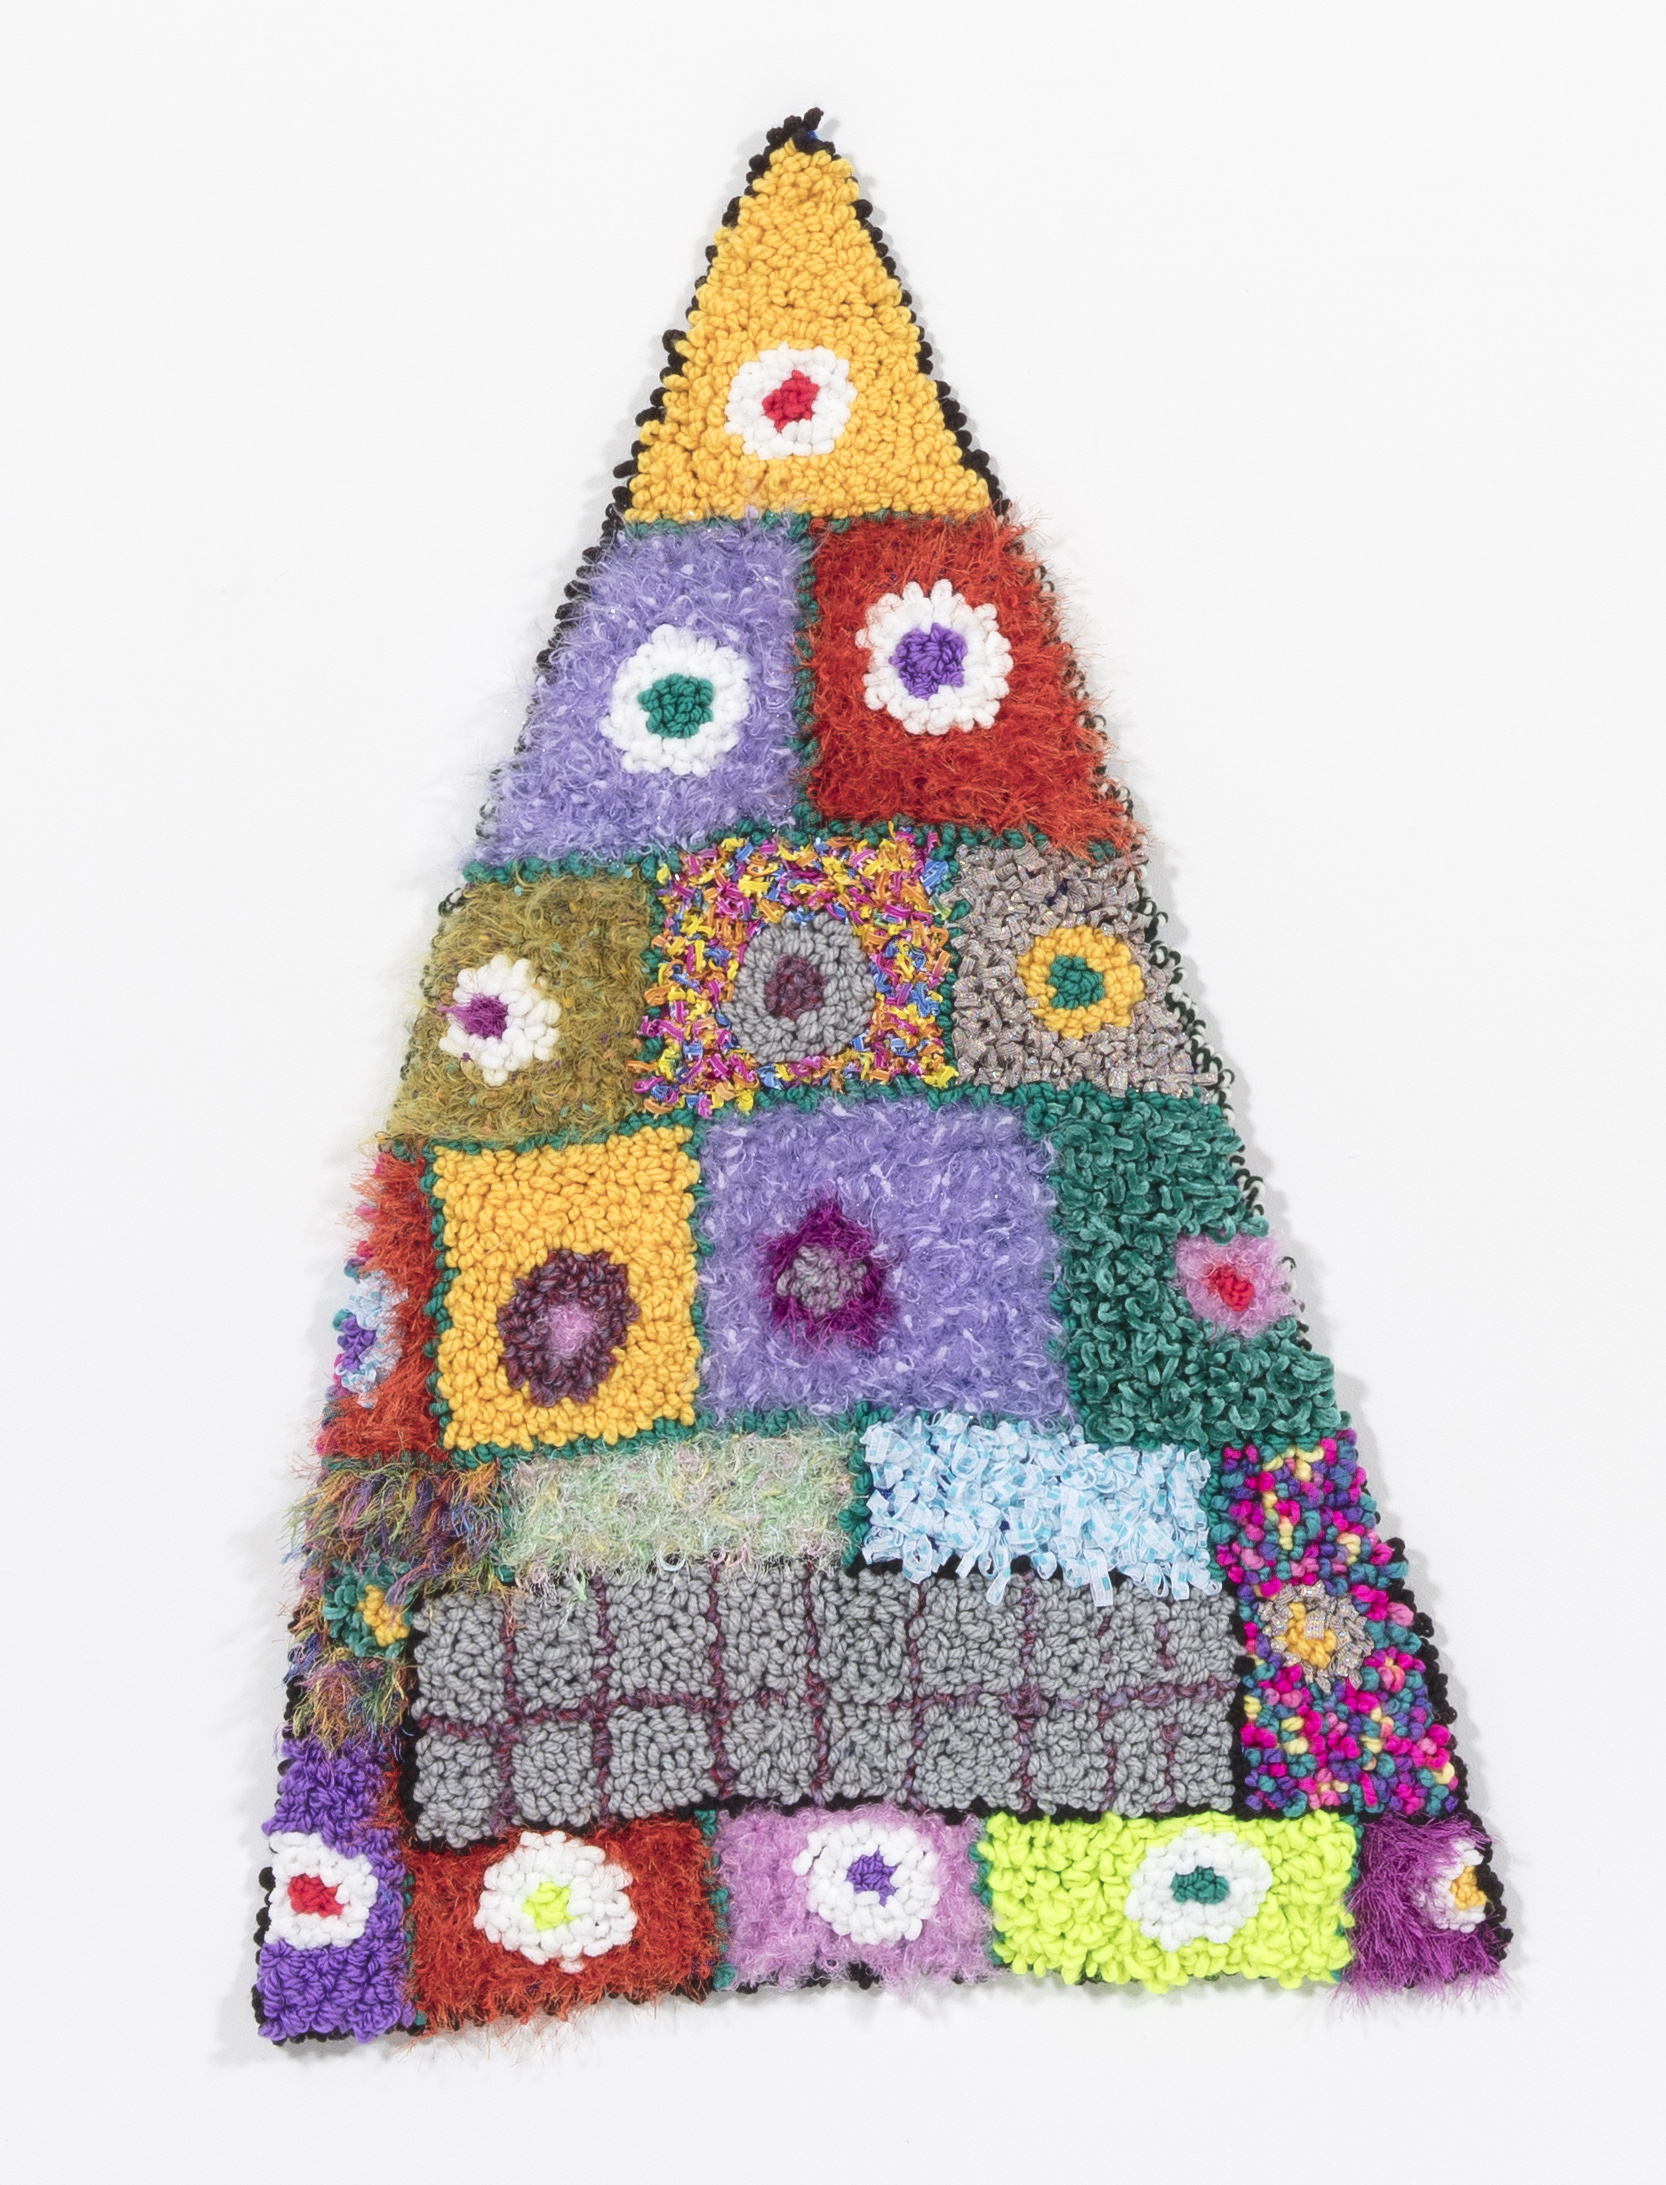 Hannah Epstein. <em>Ancient Aliens</em>, 2018. Wool, acrylic, polyester and burlap, 39 x 27 inches (99.1 x 68.6 cm)